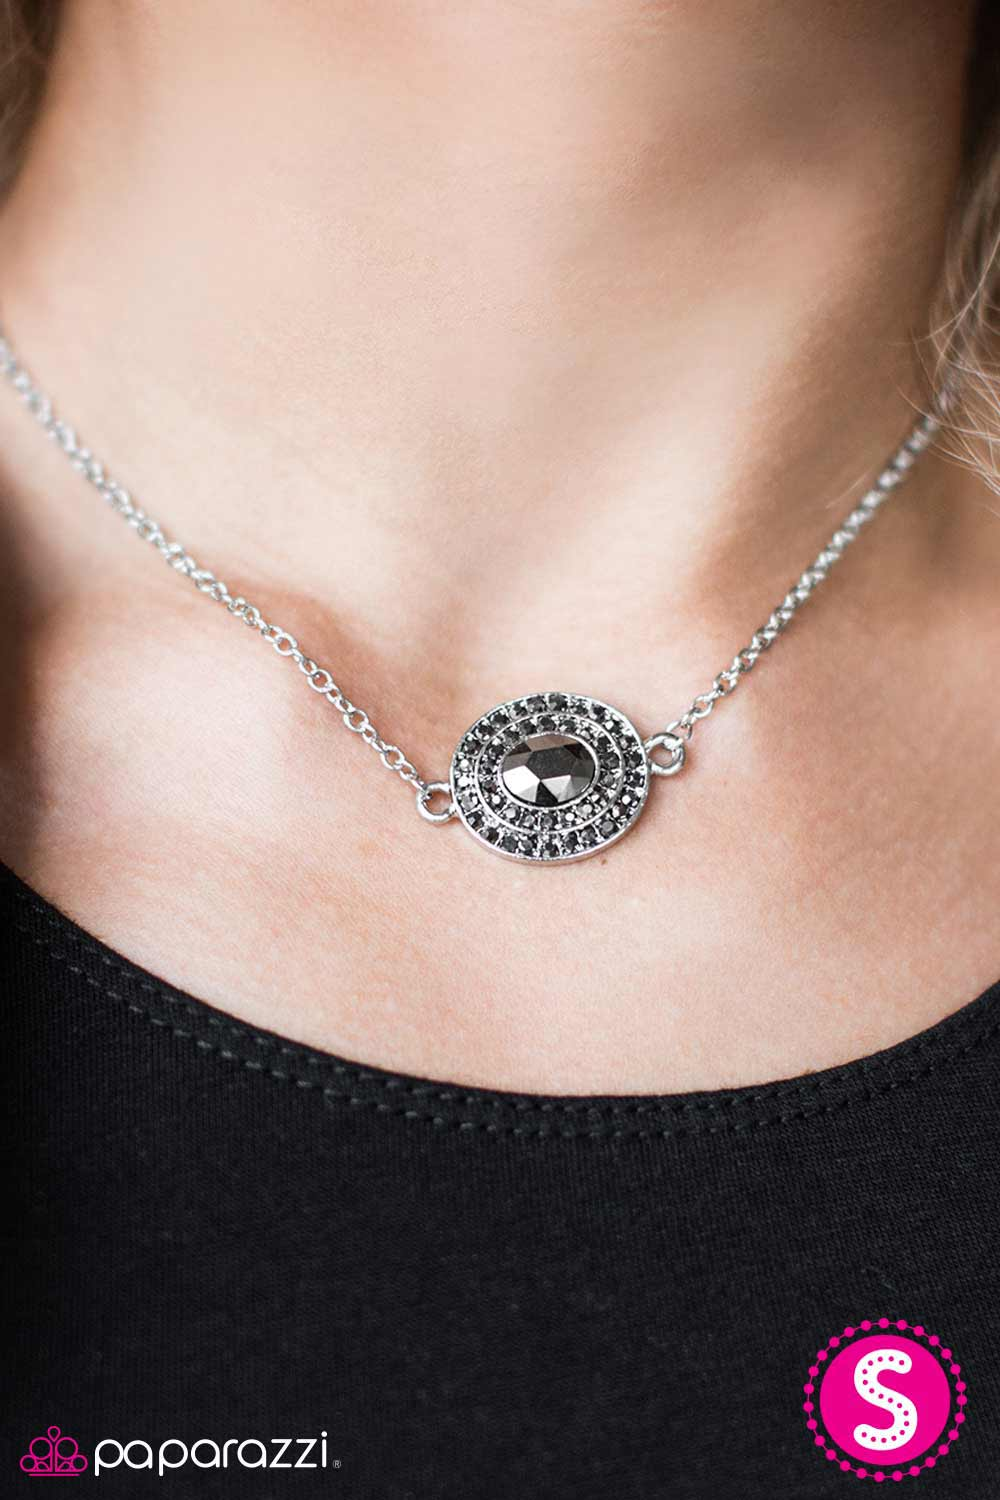 All The Grandeur In The World - Silver - Paparazzi necklace